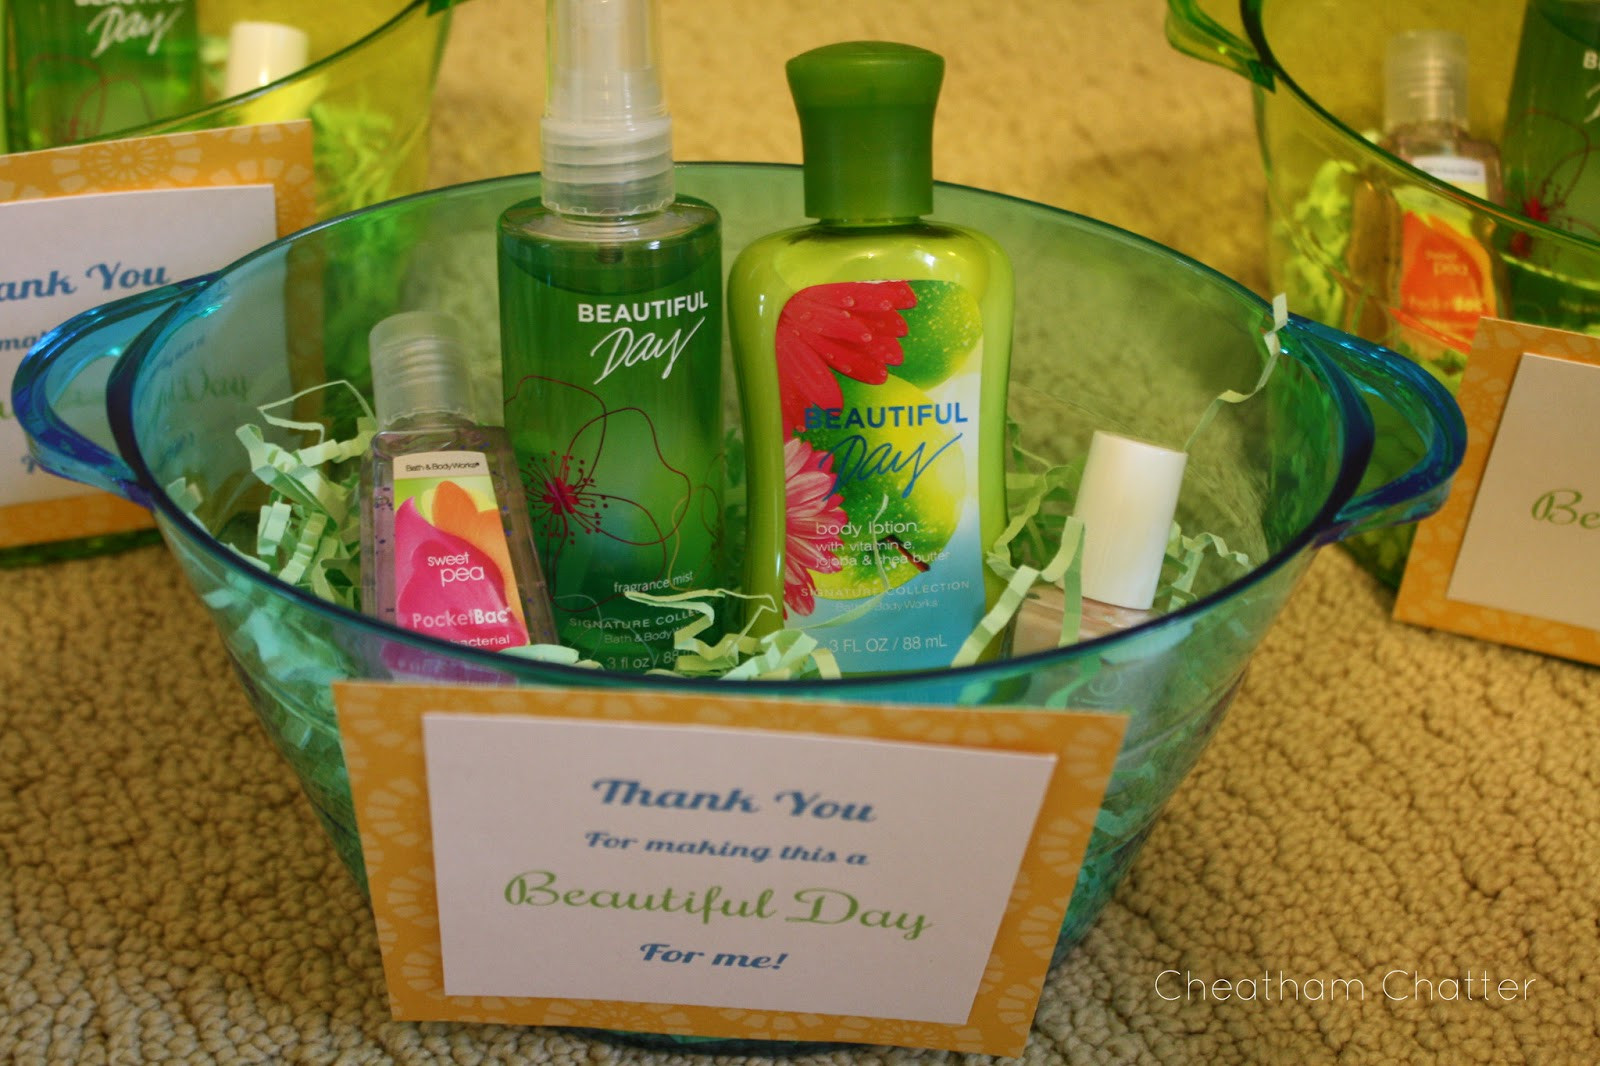 Best ideas about Baby Shower Host Gift Ideas . Save or Pin Cheatham Chatter Baby Shower Favors & Hostess Gifts Now.